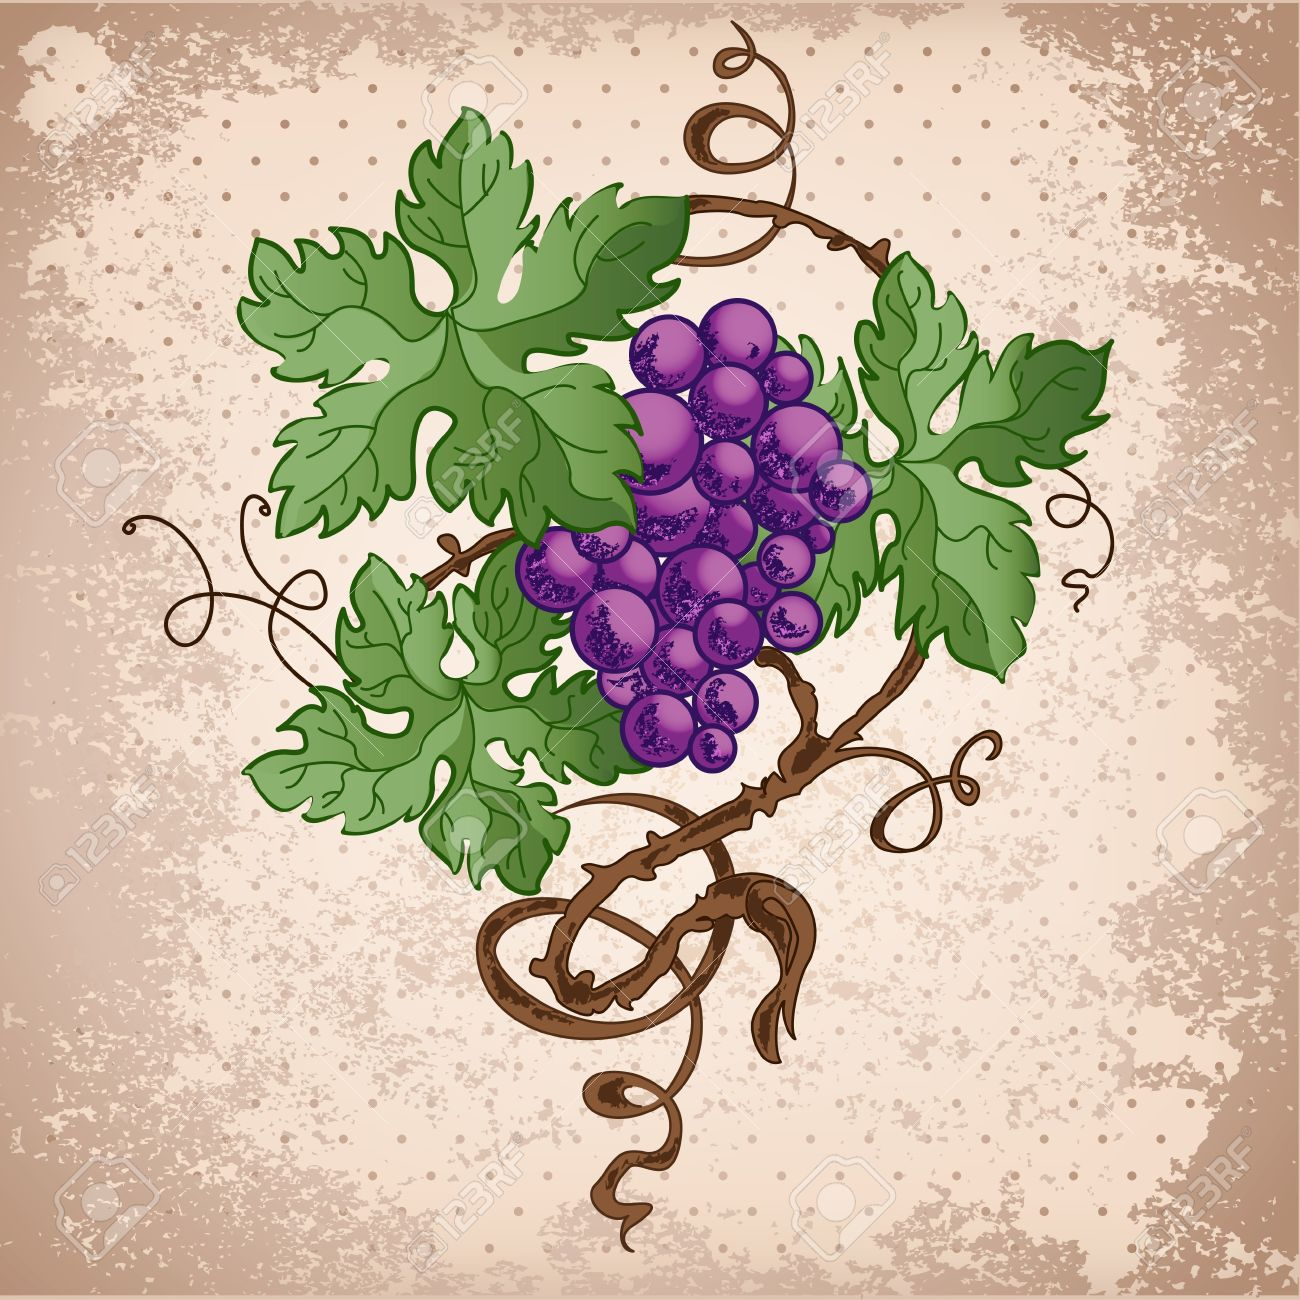 Alcohol Draw: Illustration Of Grapes On Grunge Background